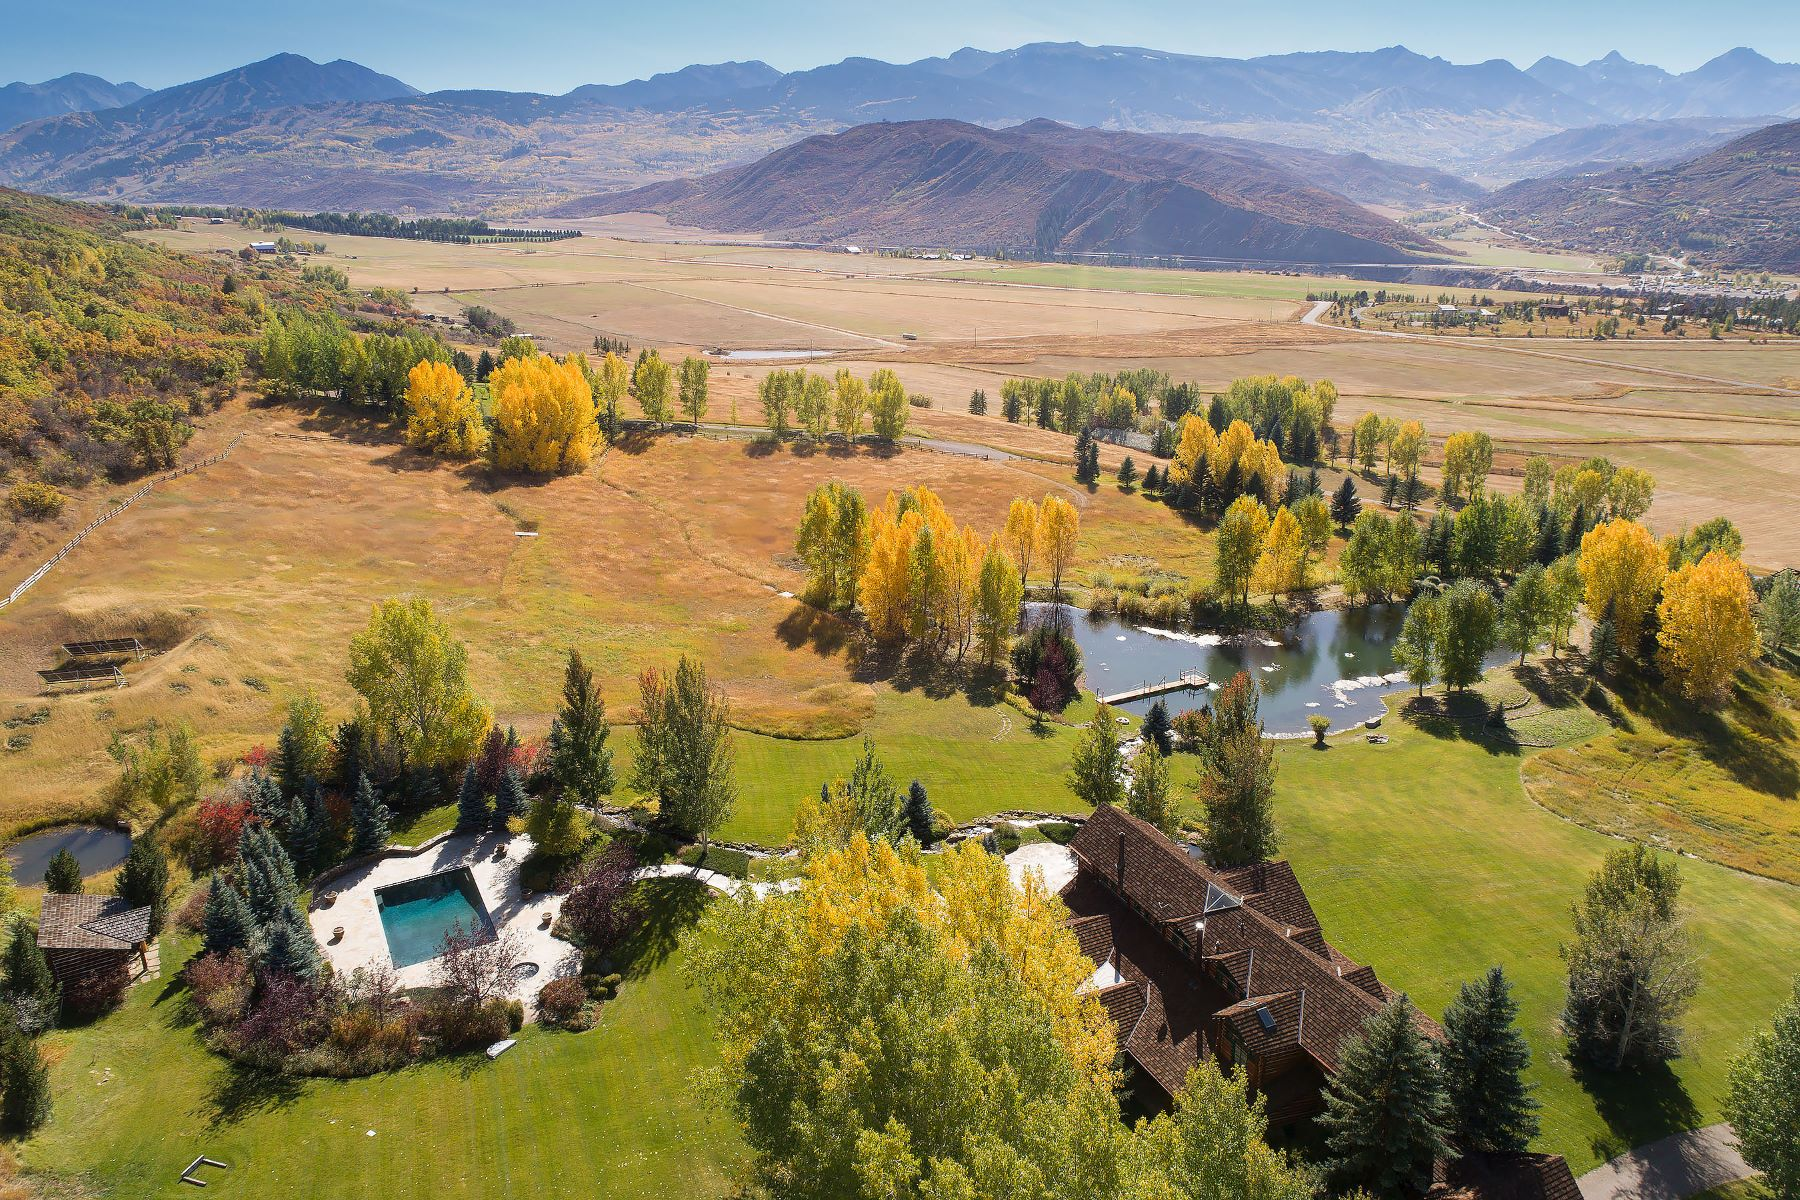 Single Family Homes for Sale at Classic Colorado Getaway 200 Yellow Fox Lane Aspen, Colorado 81611 United States